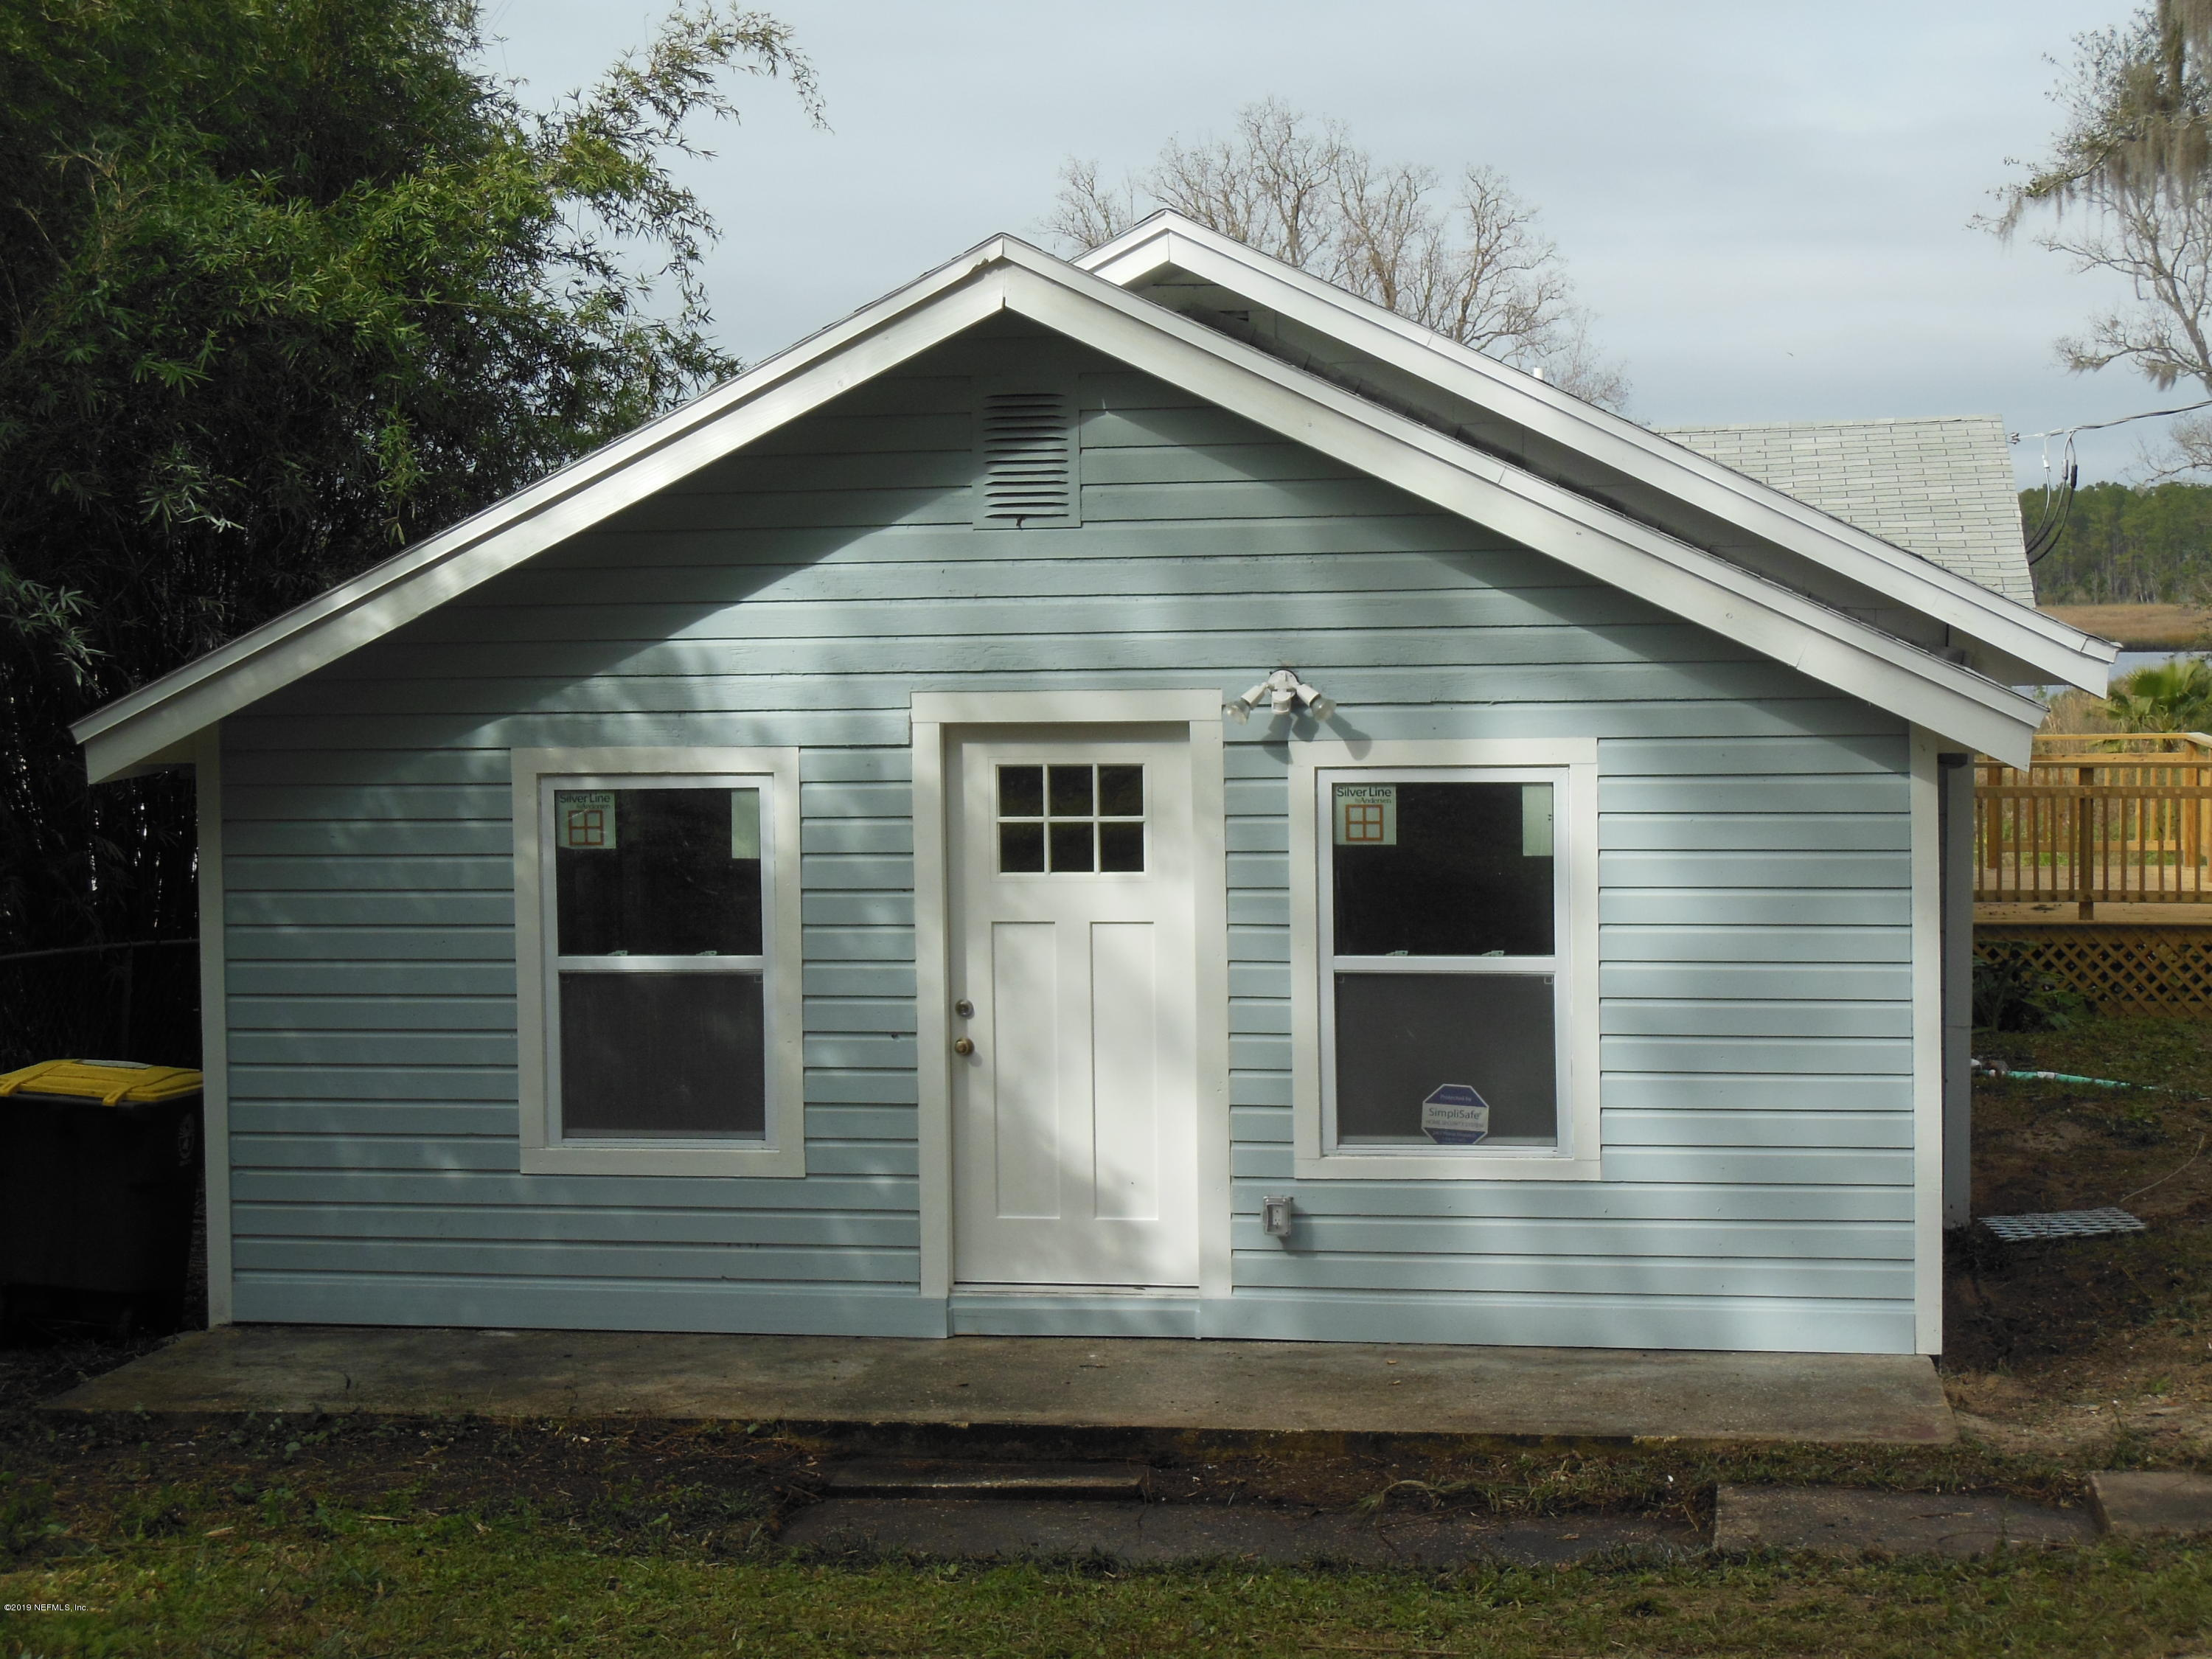 4259 TROUT RIVER, JACKSONVILLE, FLORIDA 32208, 3 Bedrooms Bedrooms, ,2 BathroomsBathrooms,Residential - single family,For sale,TROUT RIVER,977936